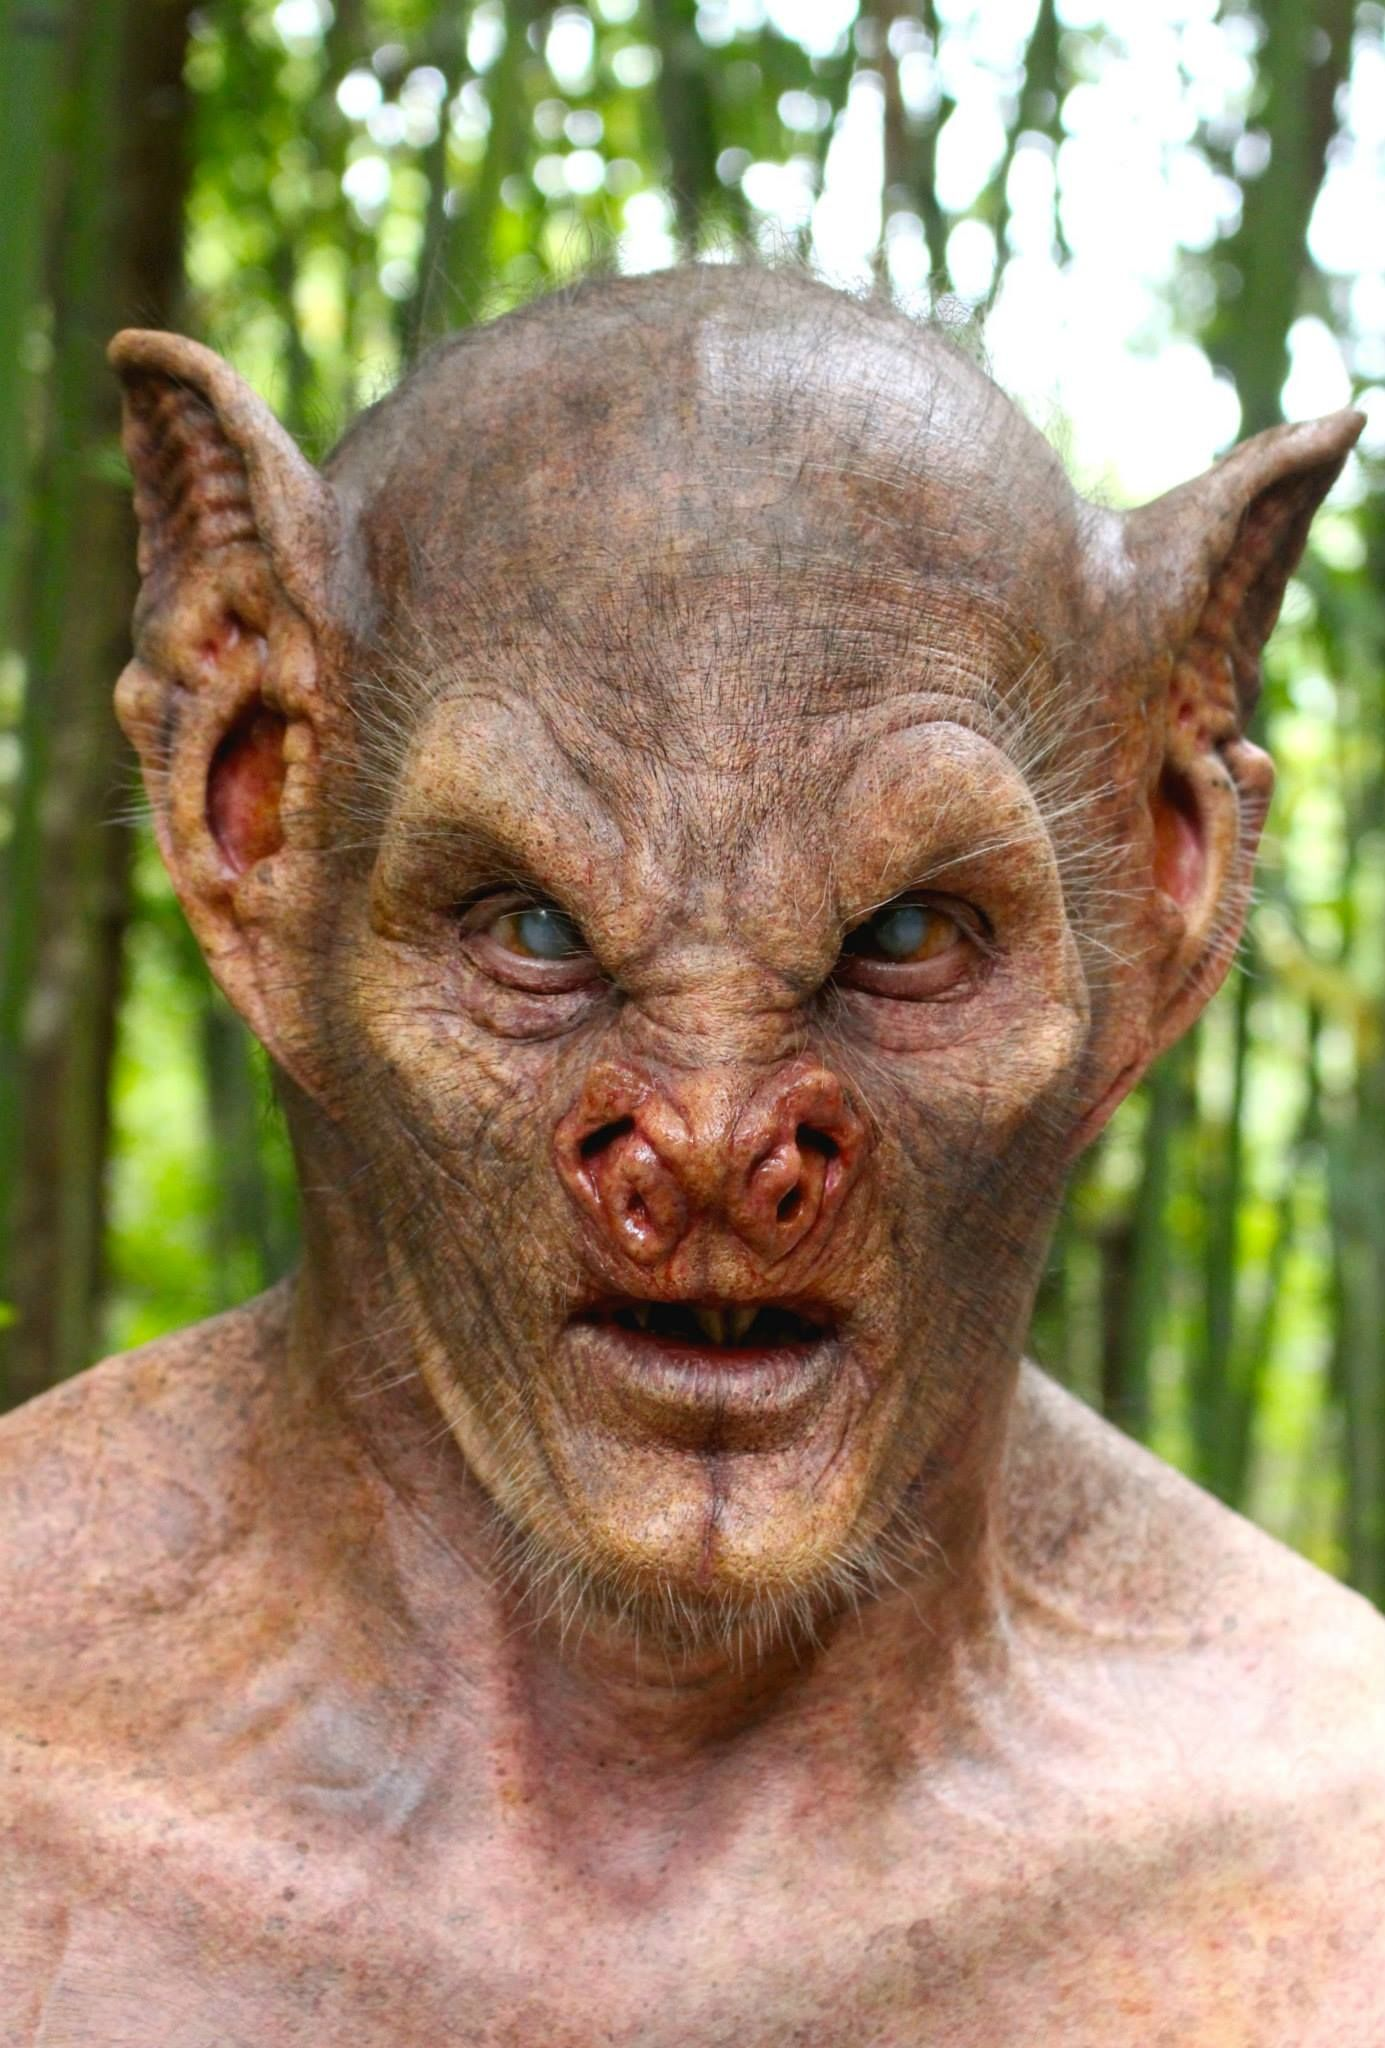 mask from jeepers creepers 2 | movie props | Pinterest | Jeepers ...